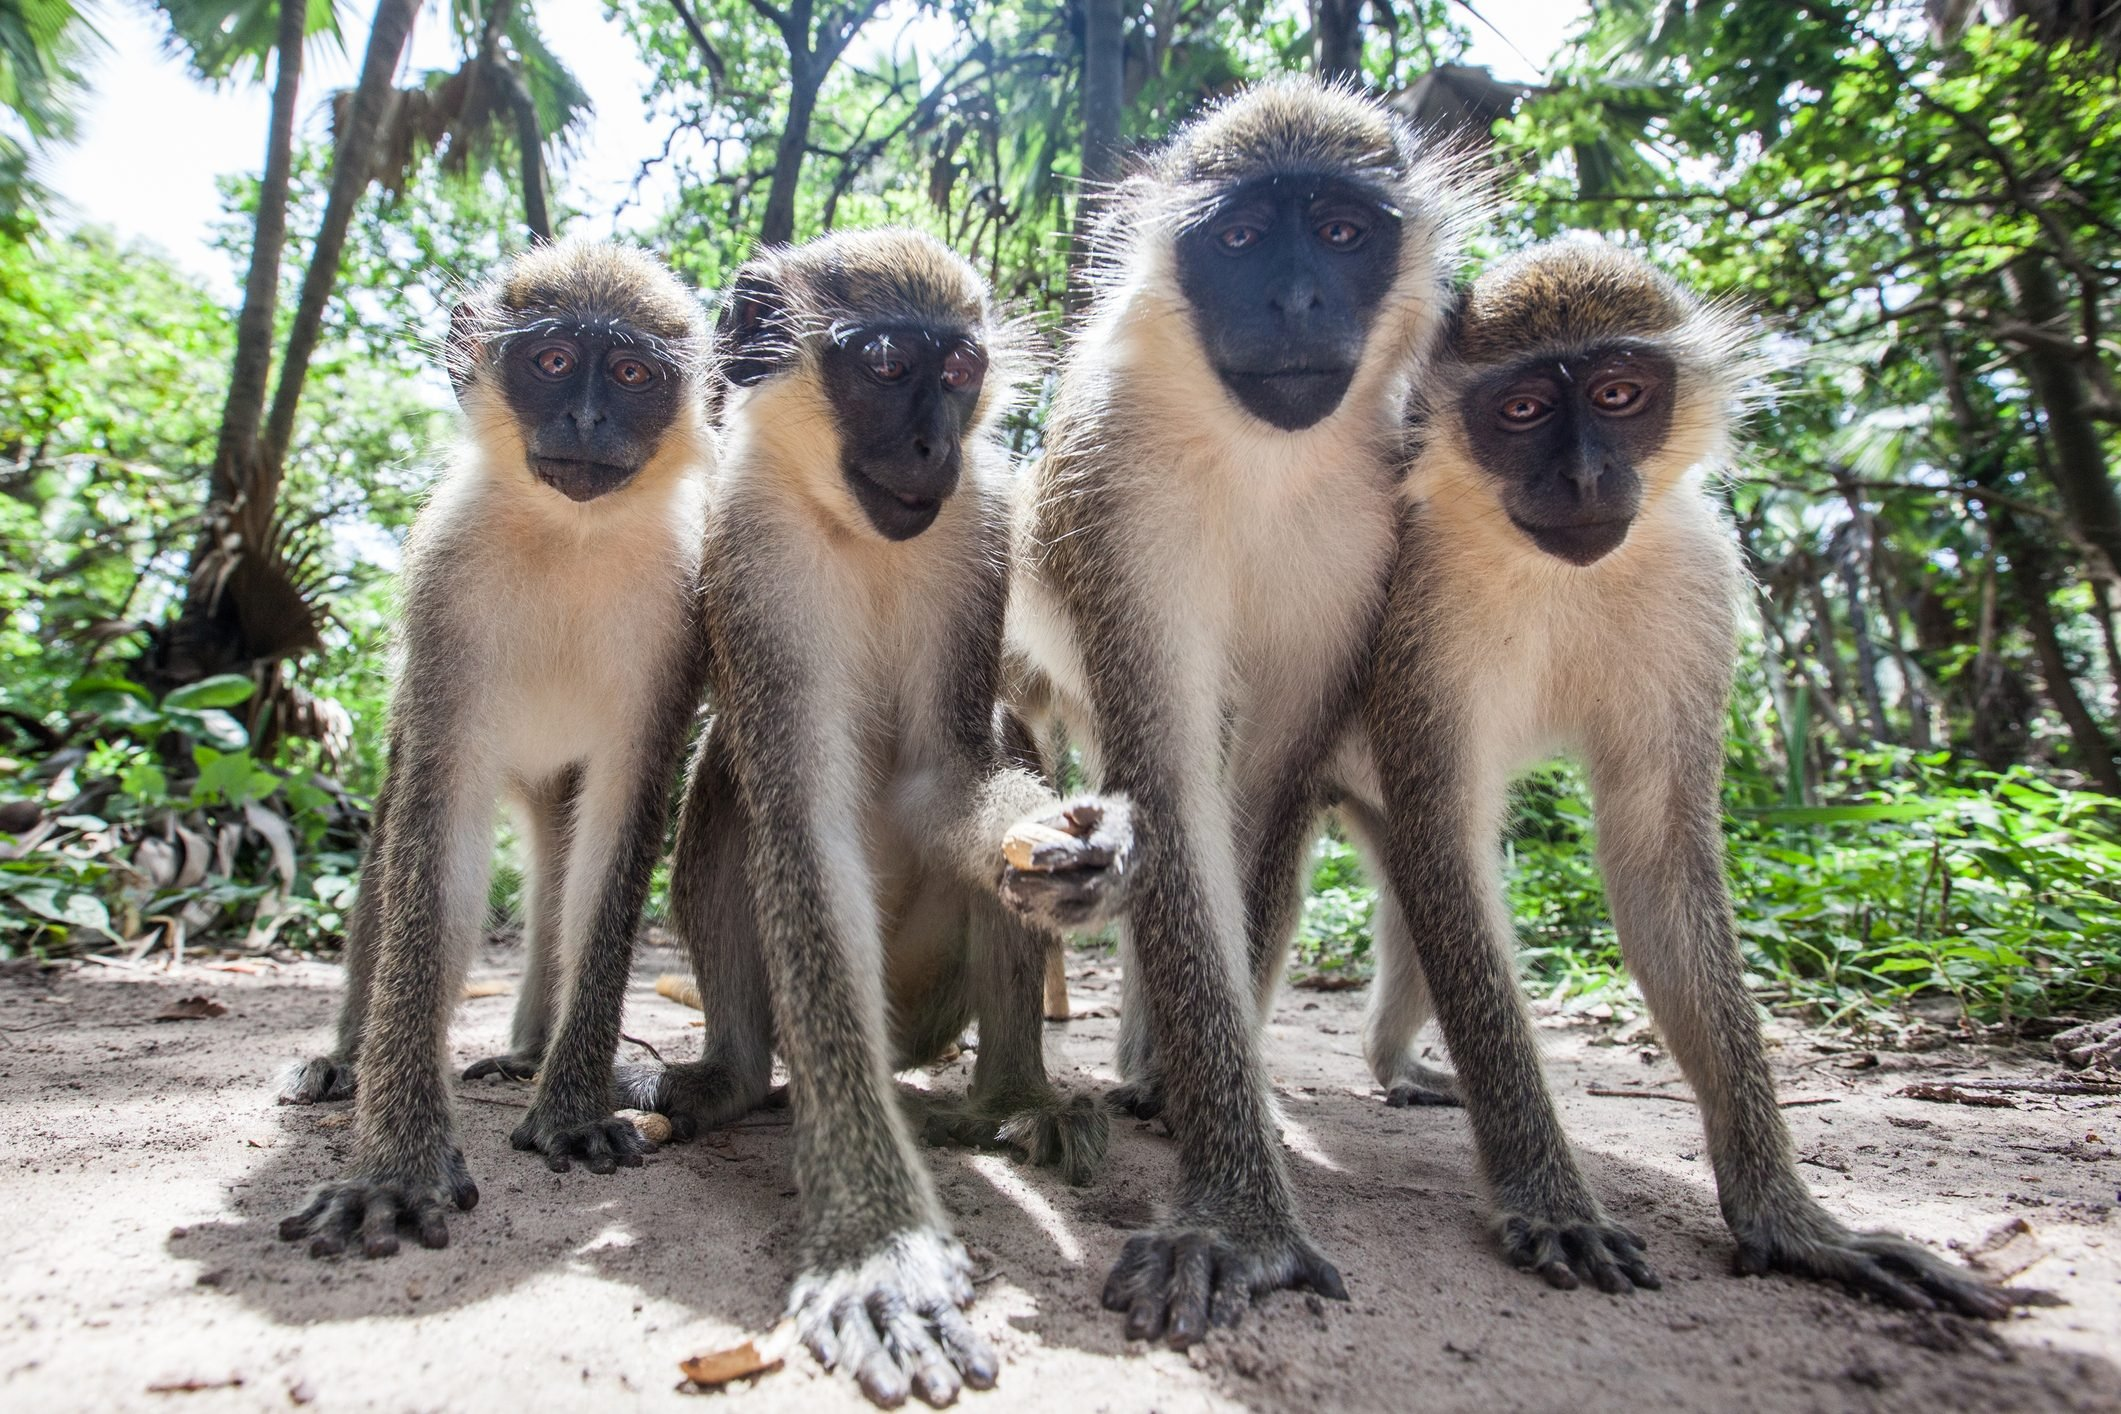 Monkeys pose for a photo in The Gambia